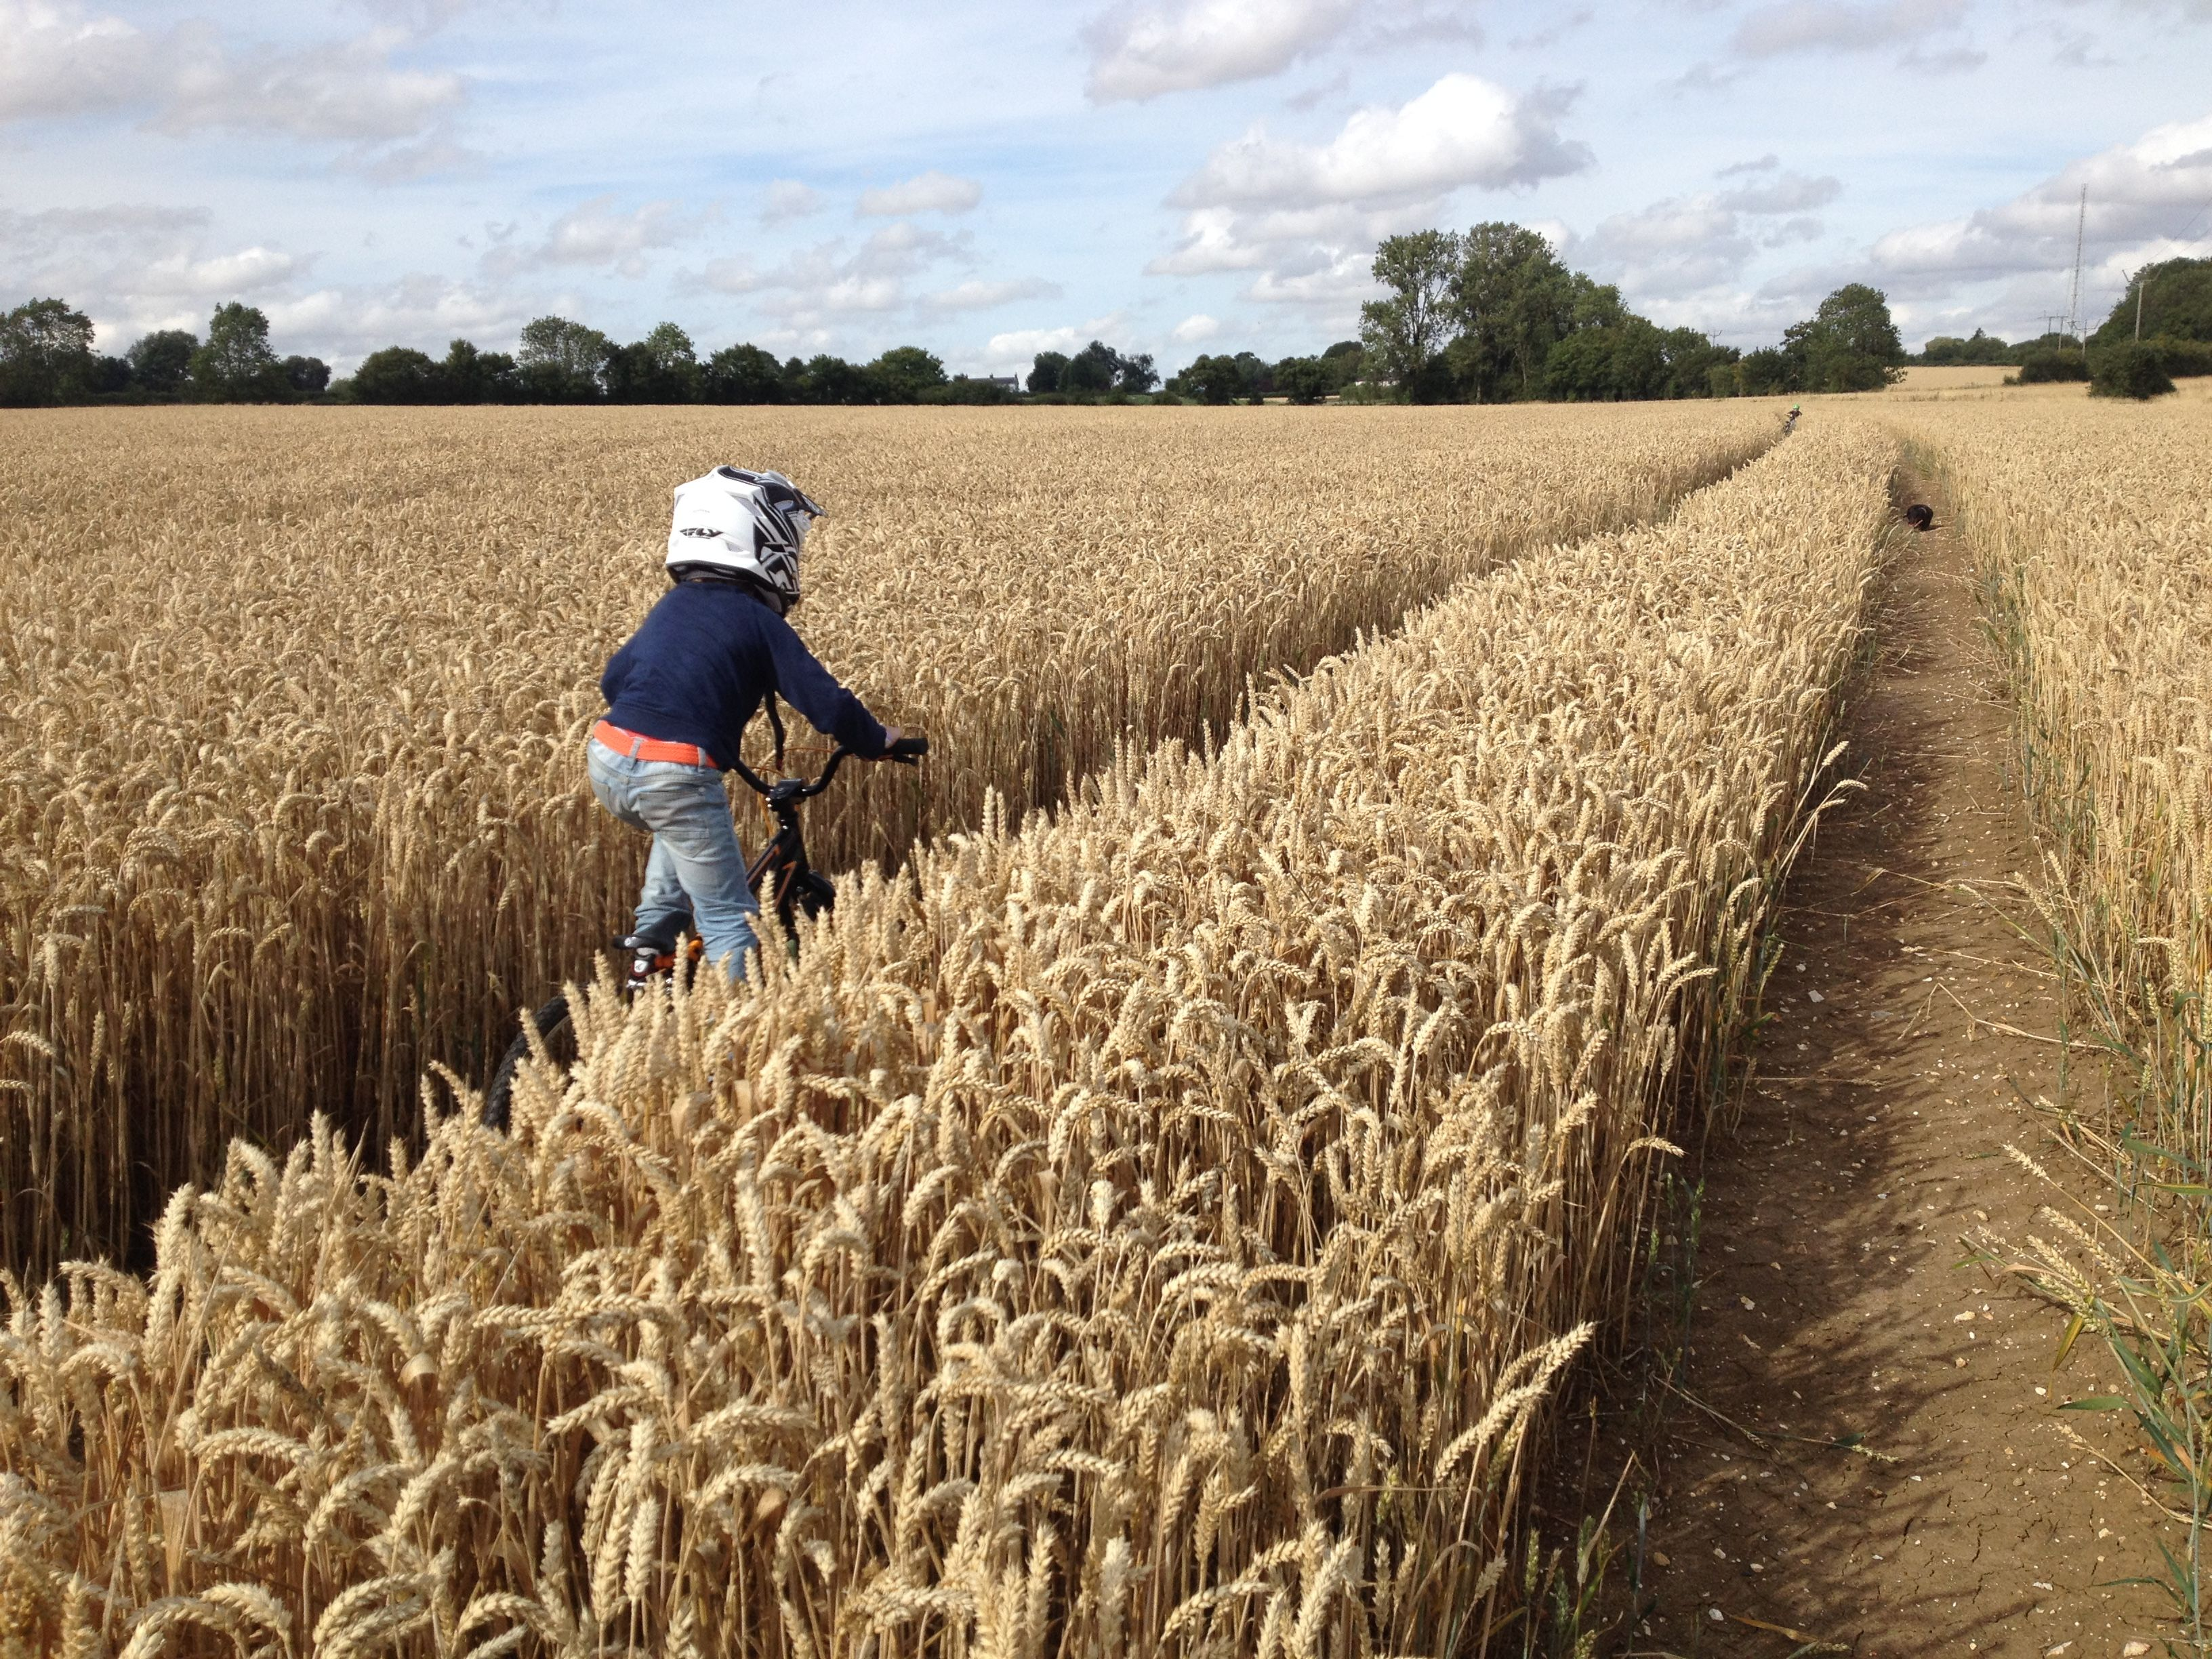 My little grom on his BMX through the fields before harvest.